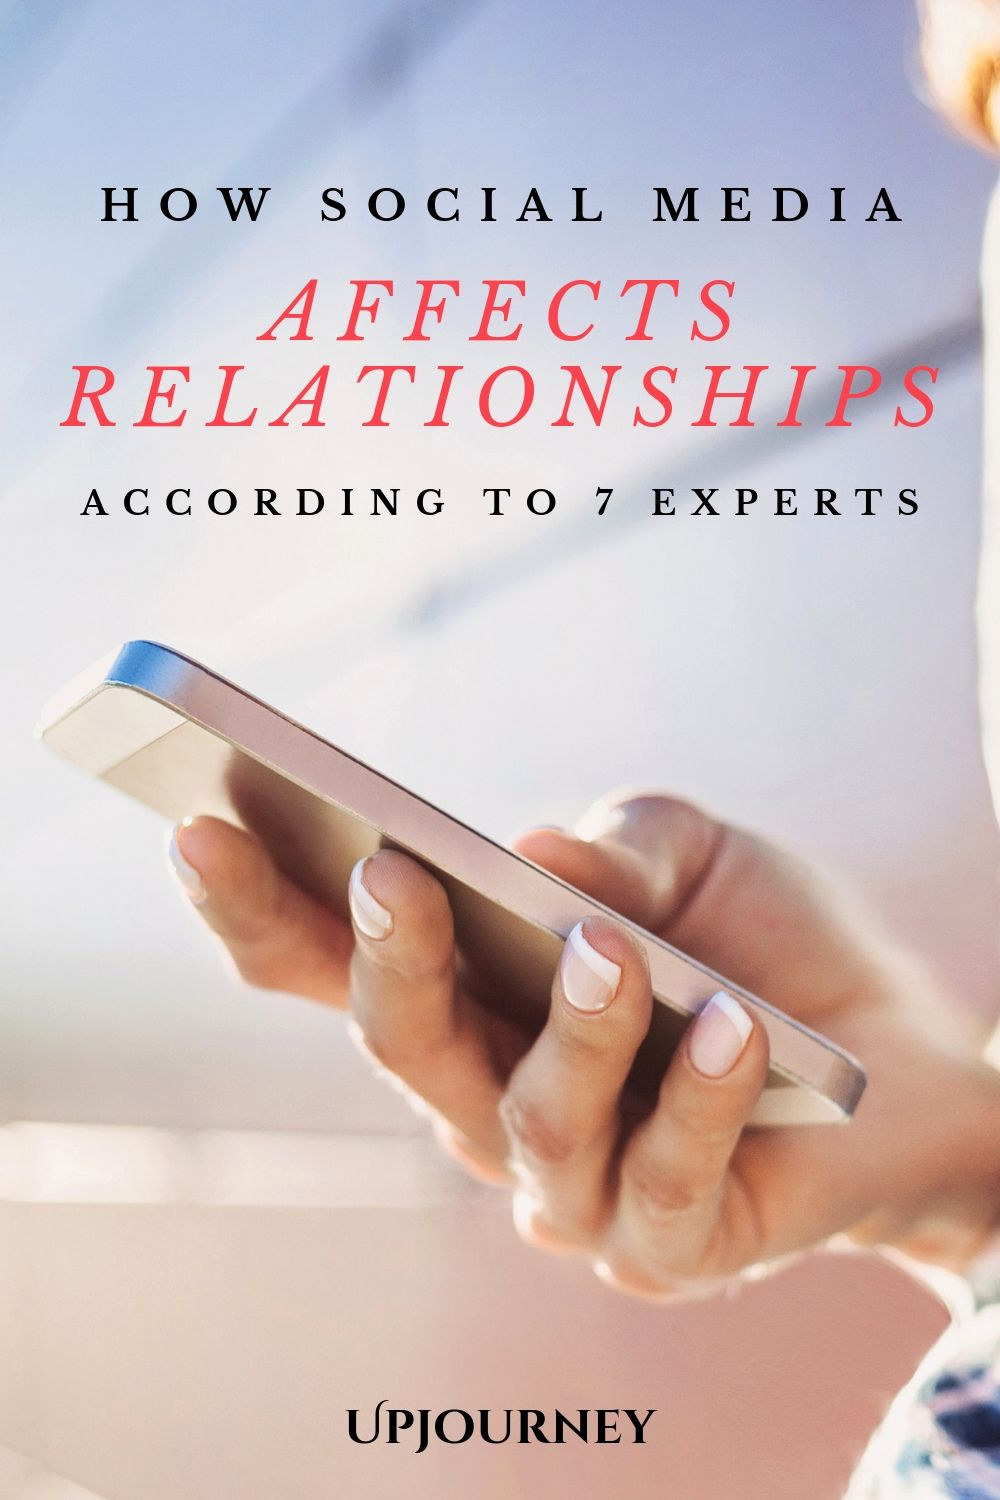 How Social Media Affects Relationships (According to 7